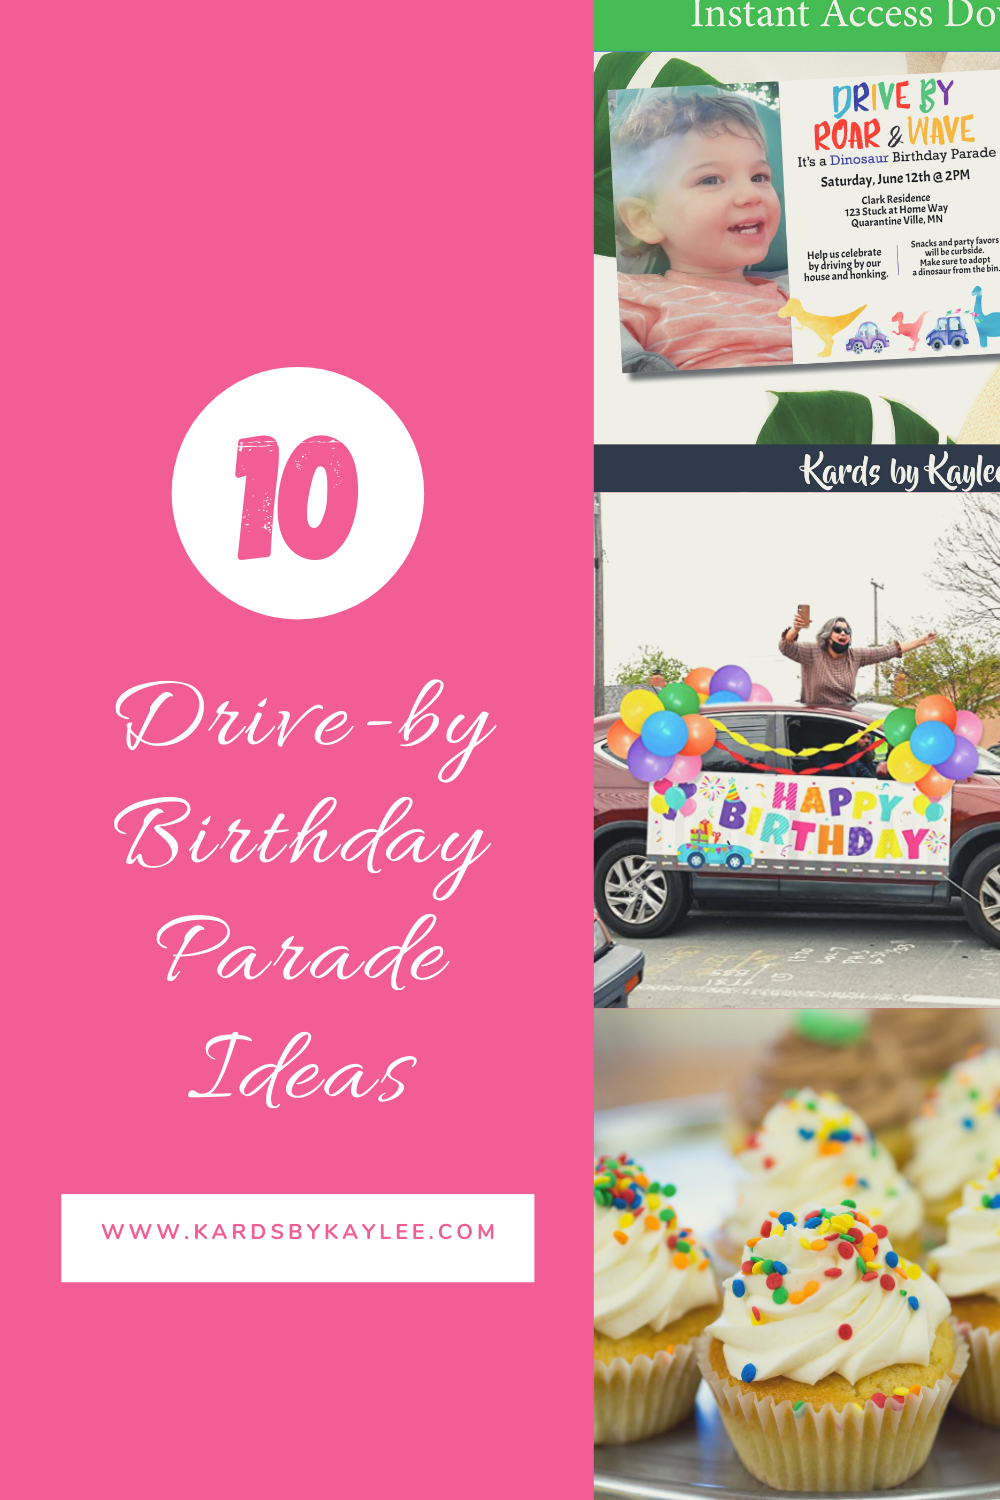 Drive By Birthday Parade Ideas Kards By Kaylee Drive Thru Party